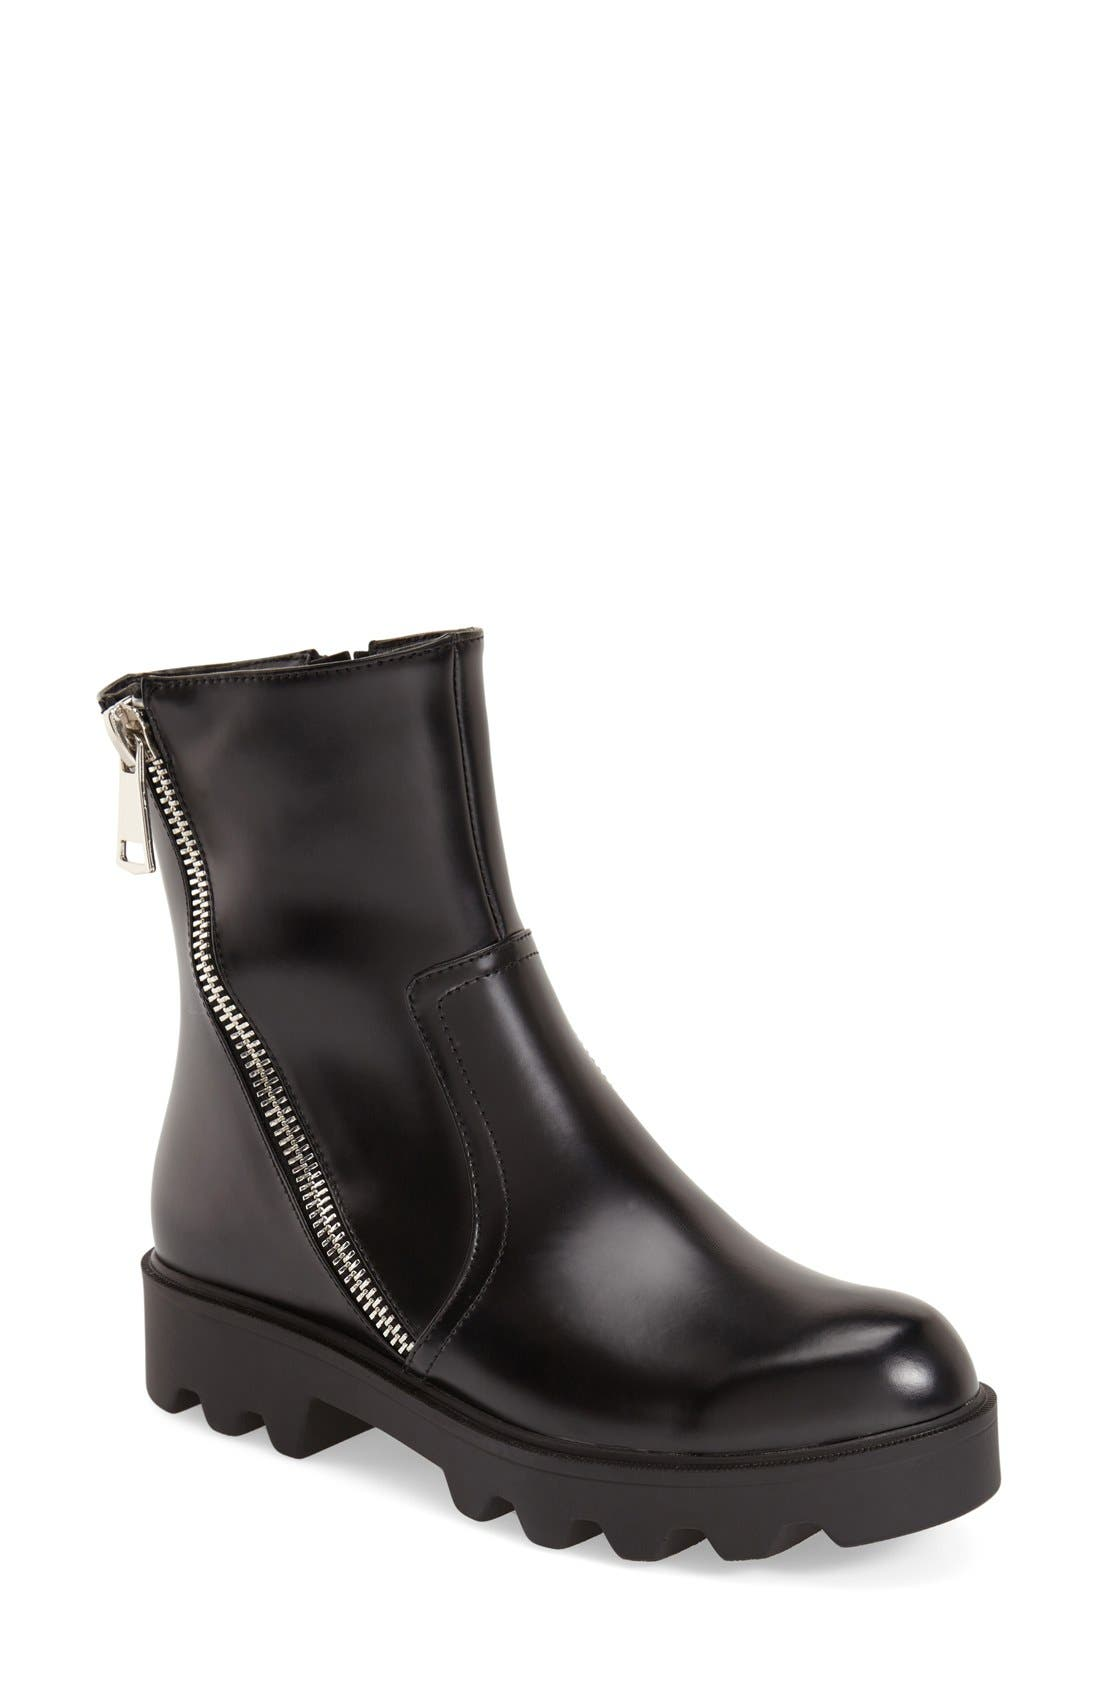 Alternate Image 1 Selected - N.Y.L.A. 'Swyft' Boot (Women)